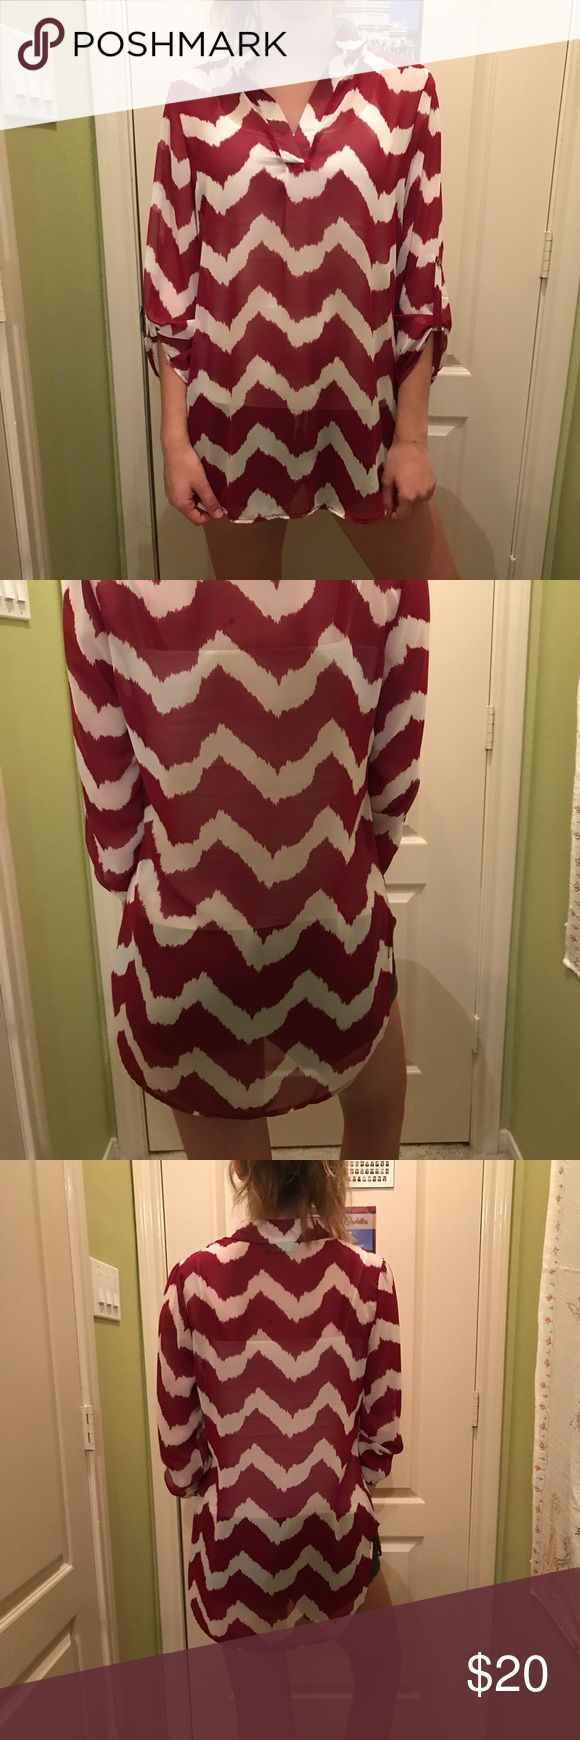 Maroon & white chevron top Maroon and white chevron top by Filly Flare! Size M. Super light and comfy!! This is also a great fall top for any occasion, it can be dressed either up or down! Great with jeans or tucked into a skirt or shorts. Tops Blouses